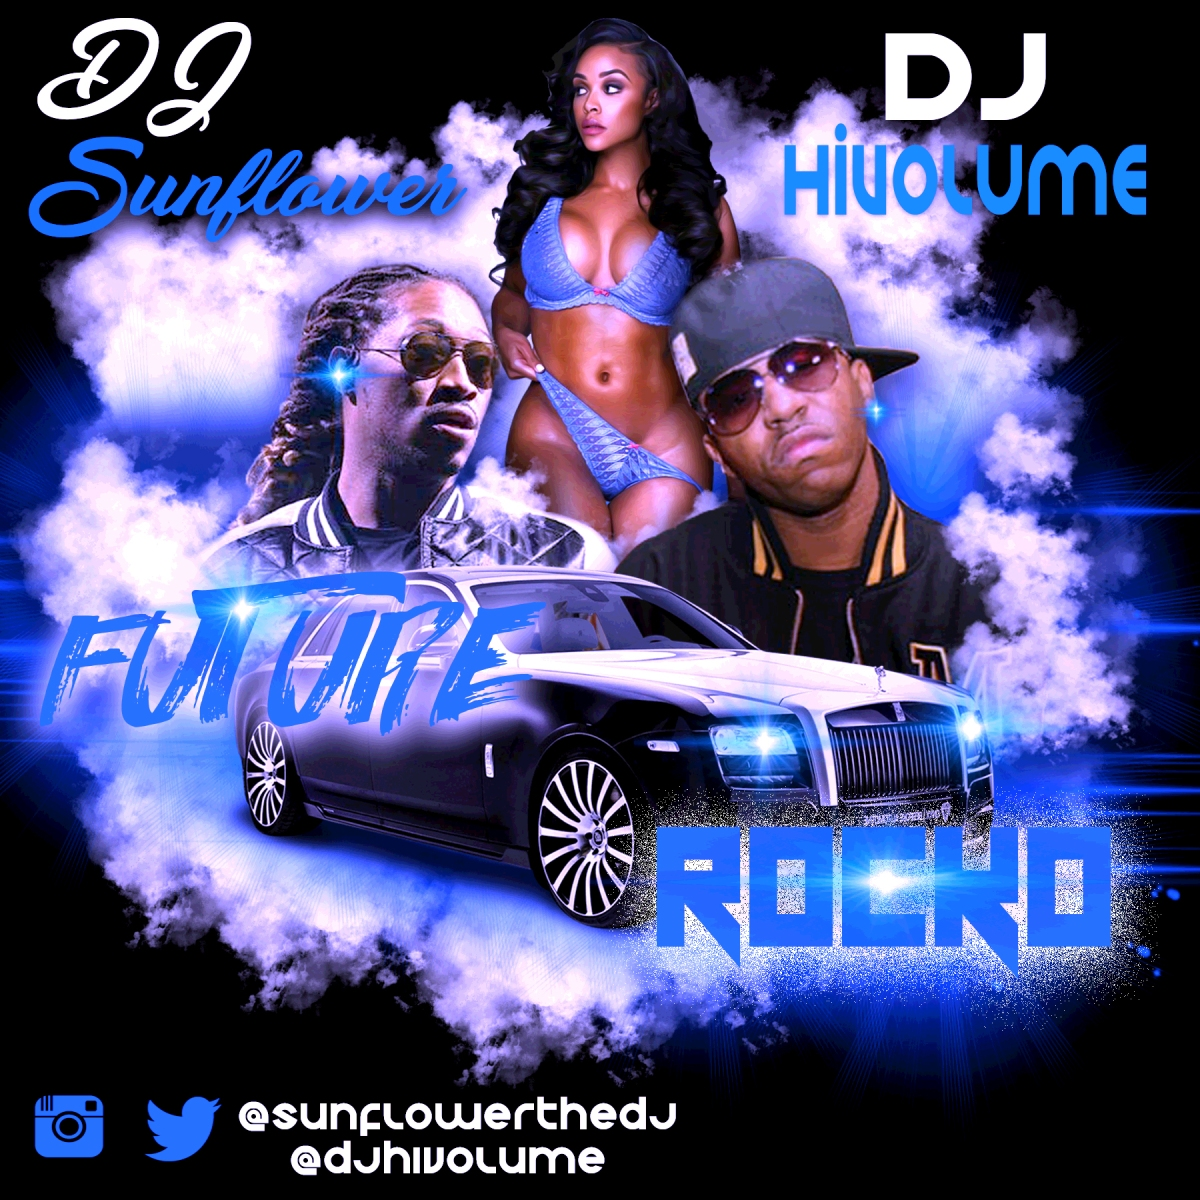 FUTURE VS ROCKO @SUNFLOWERTHEDJ @DJHIVOLUME